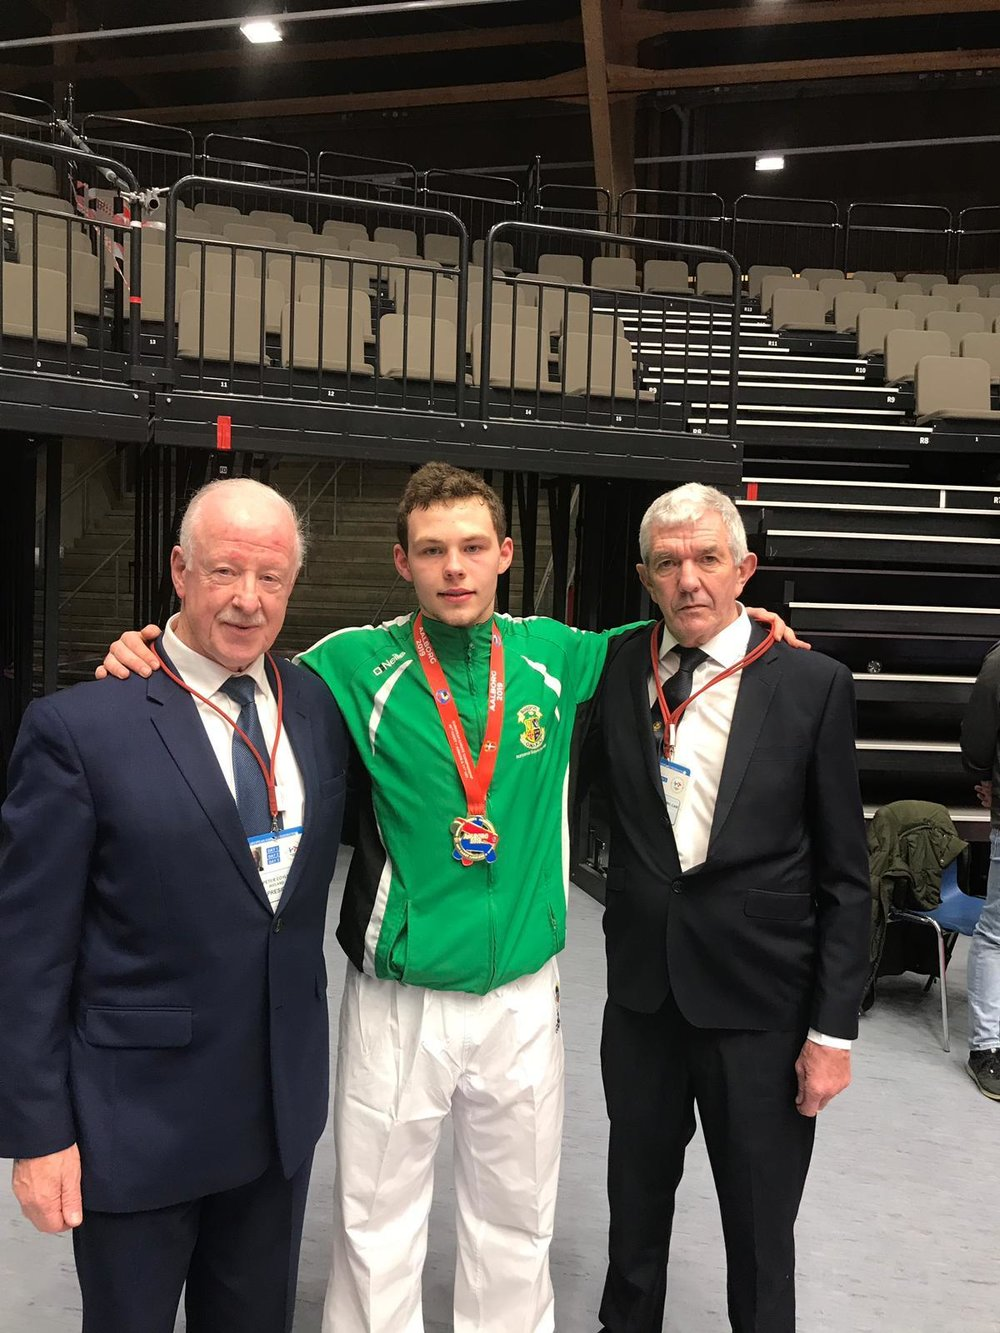 Chris with the President of Irish Karate and national coach Derek